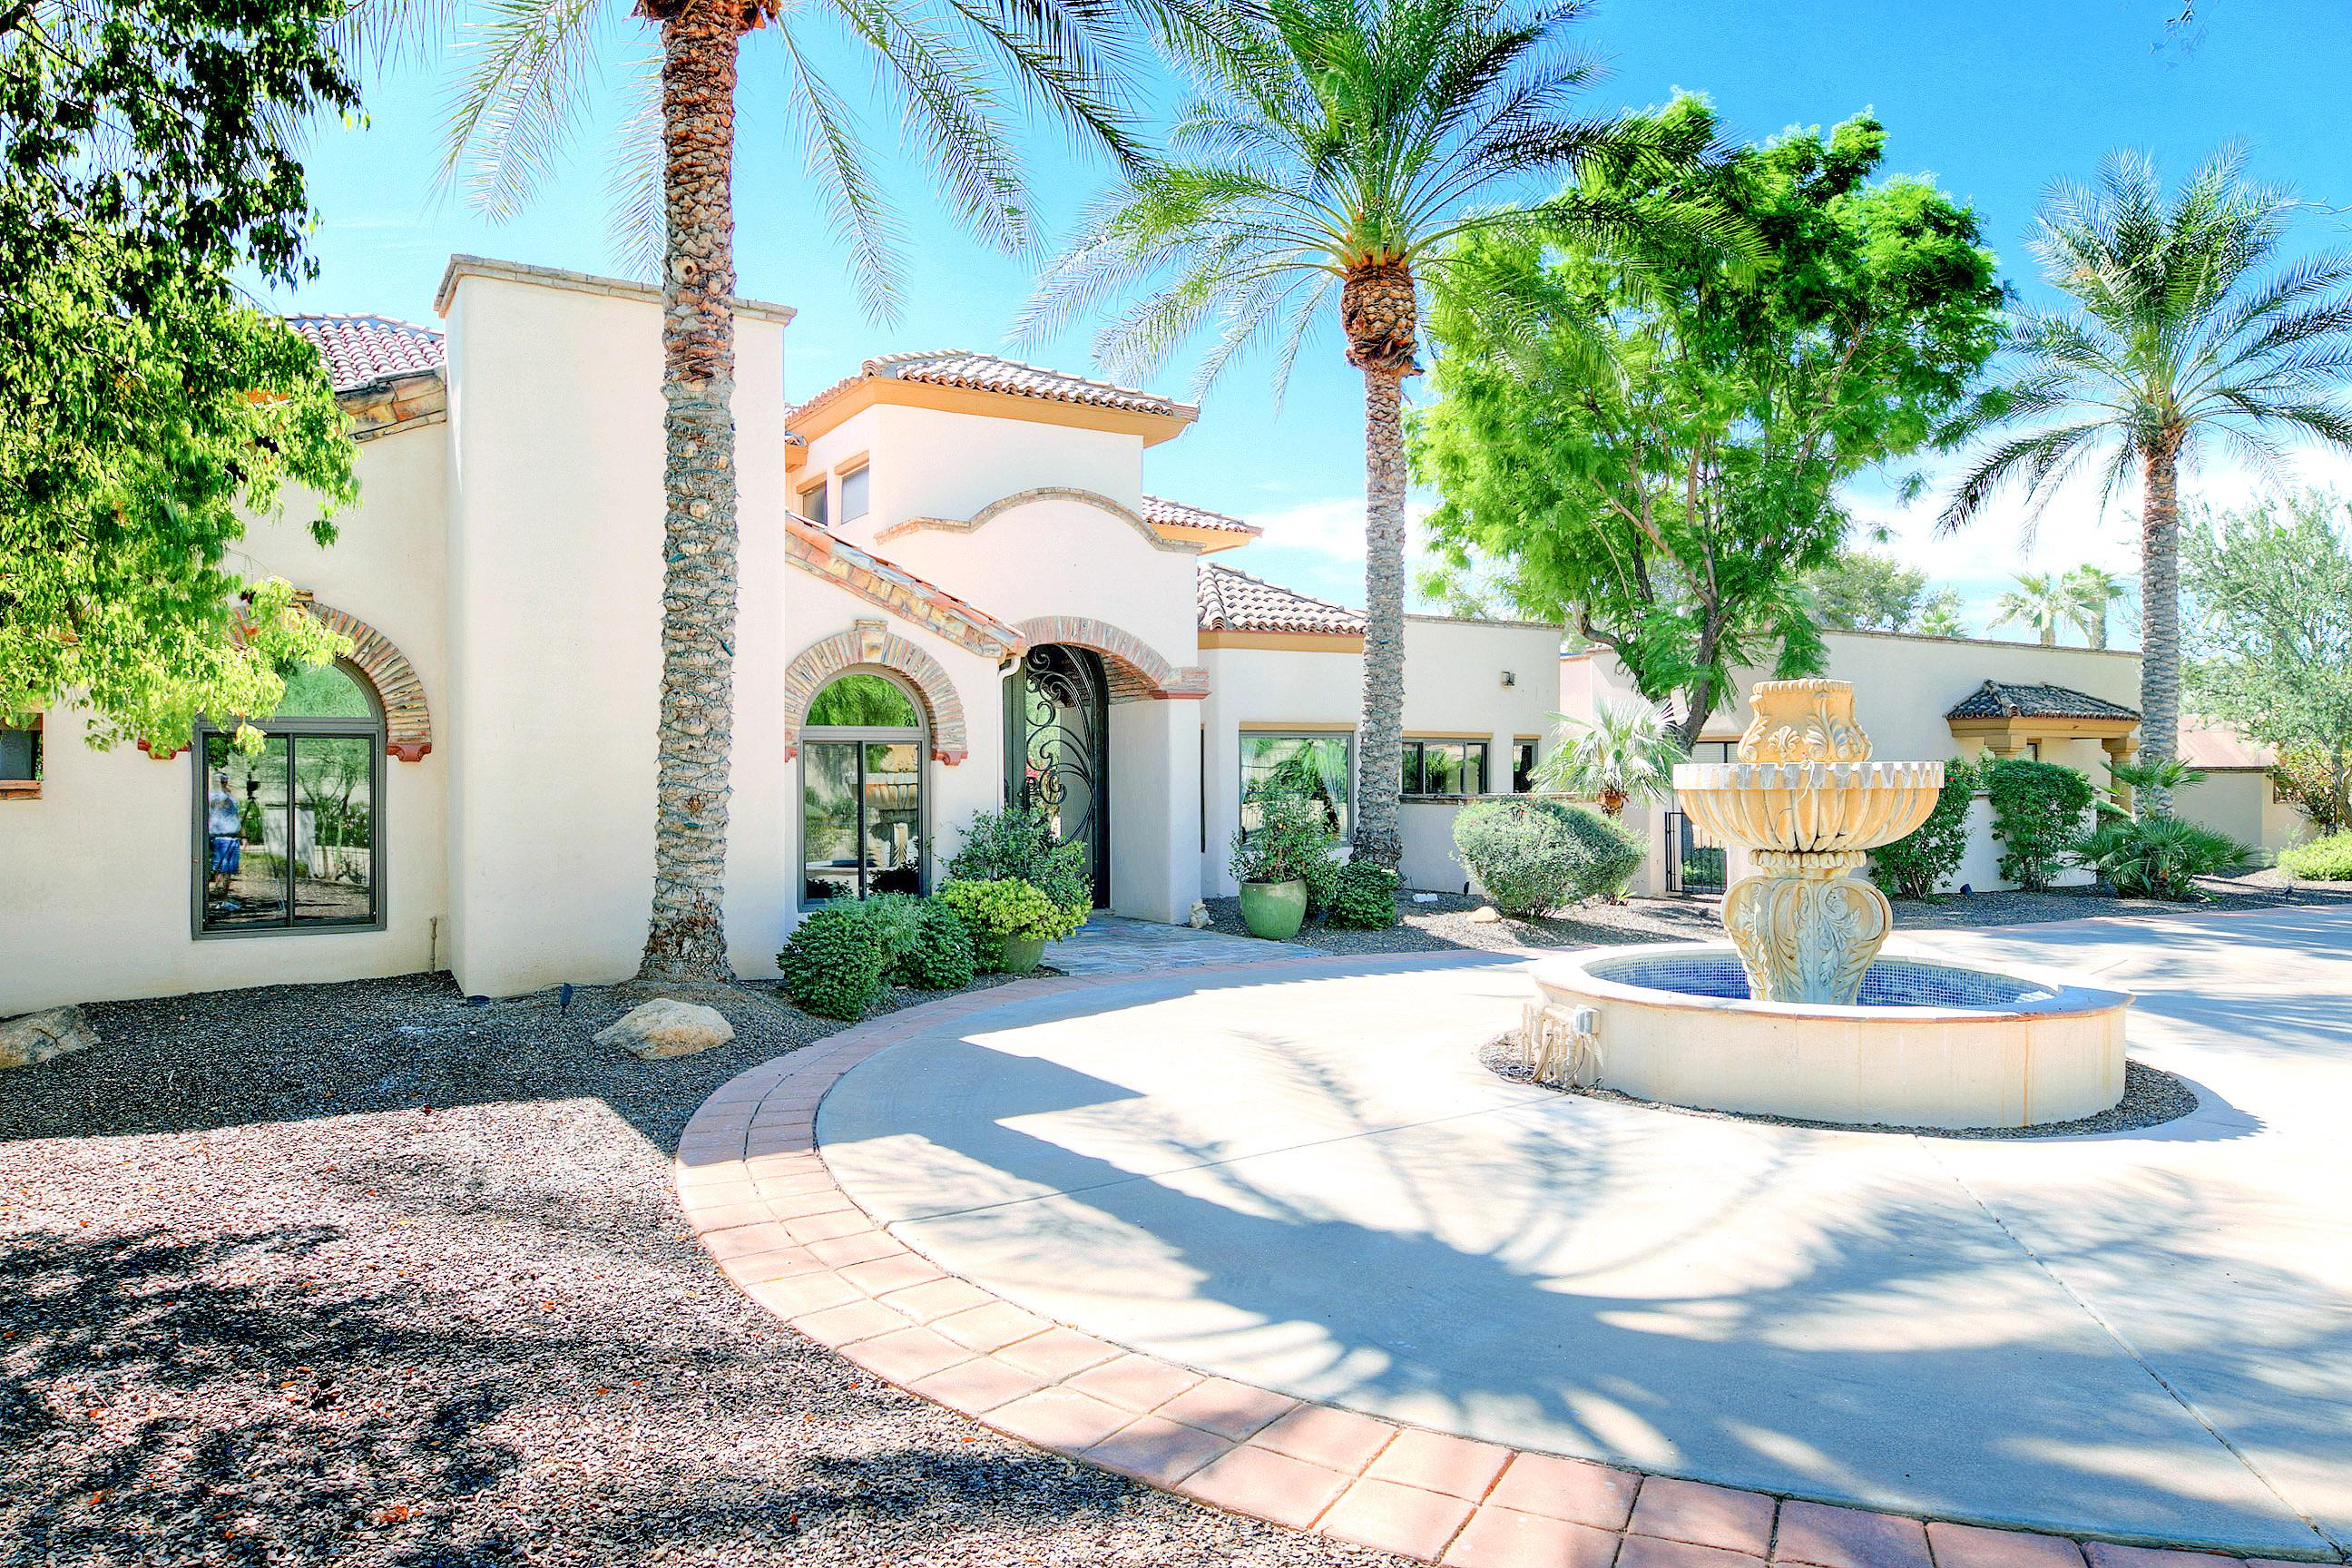 Welcome to Paradise Valley, where a tropically landscaped courtyard greets you upon arrival.